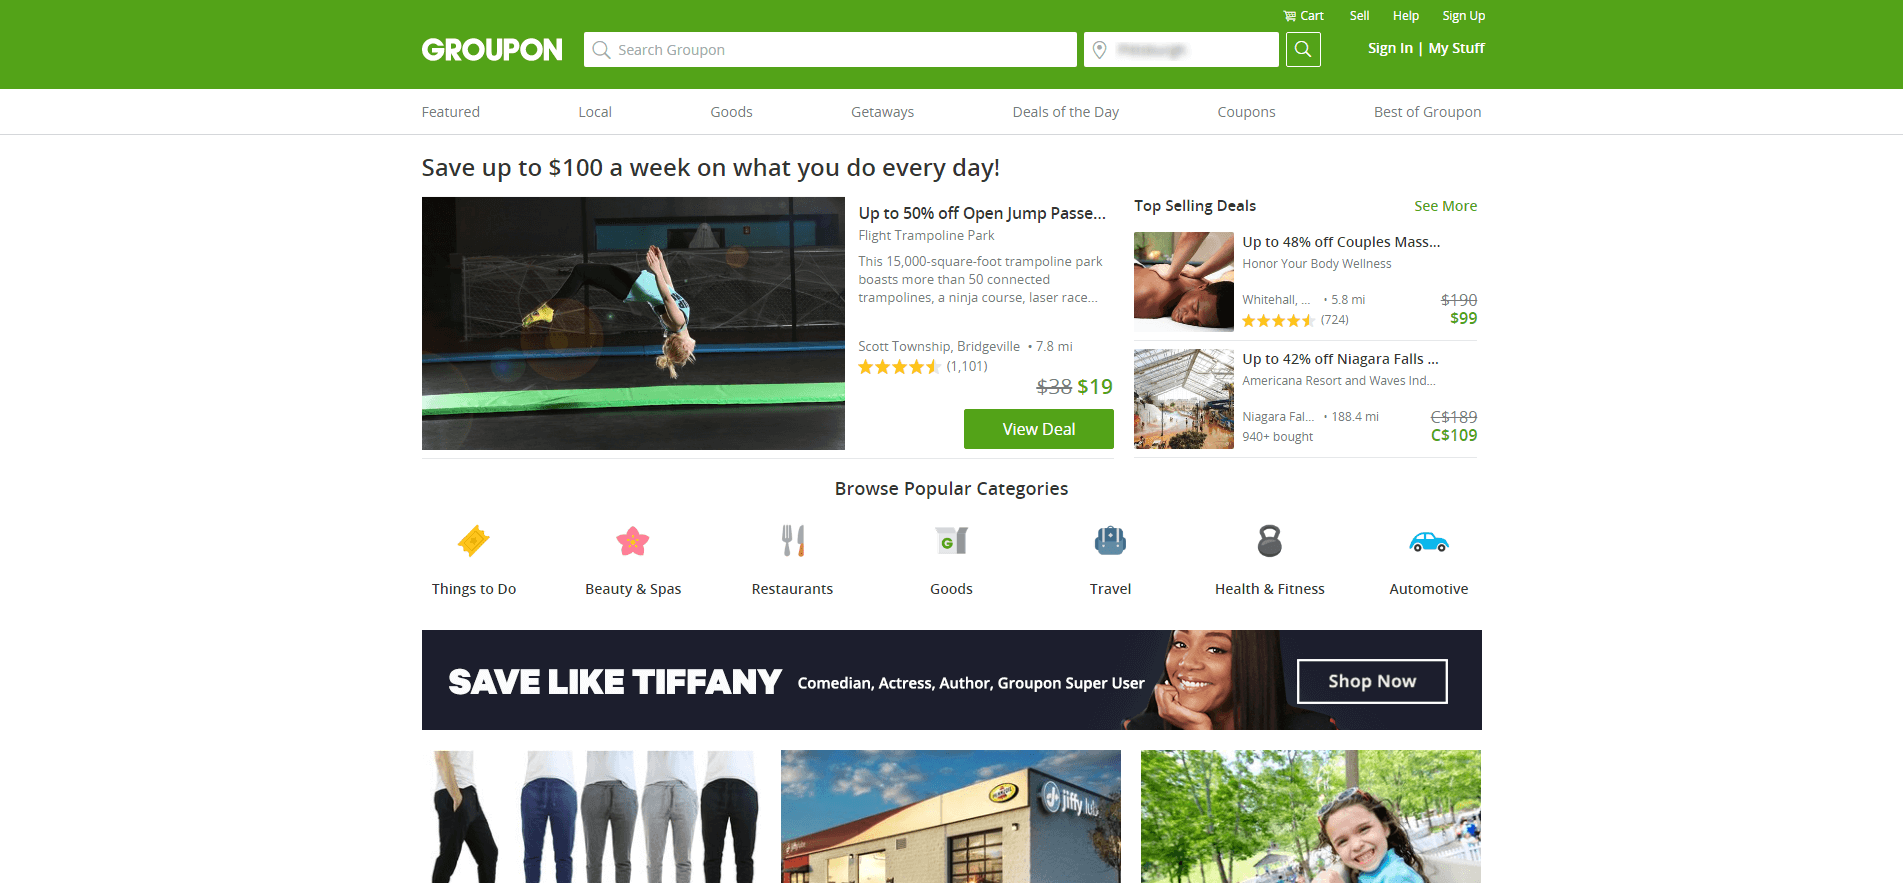 11 Best Websites For Finding Coupons And Deals Online